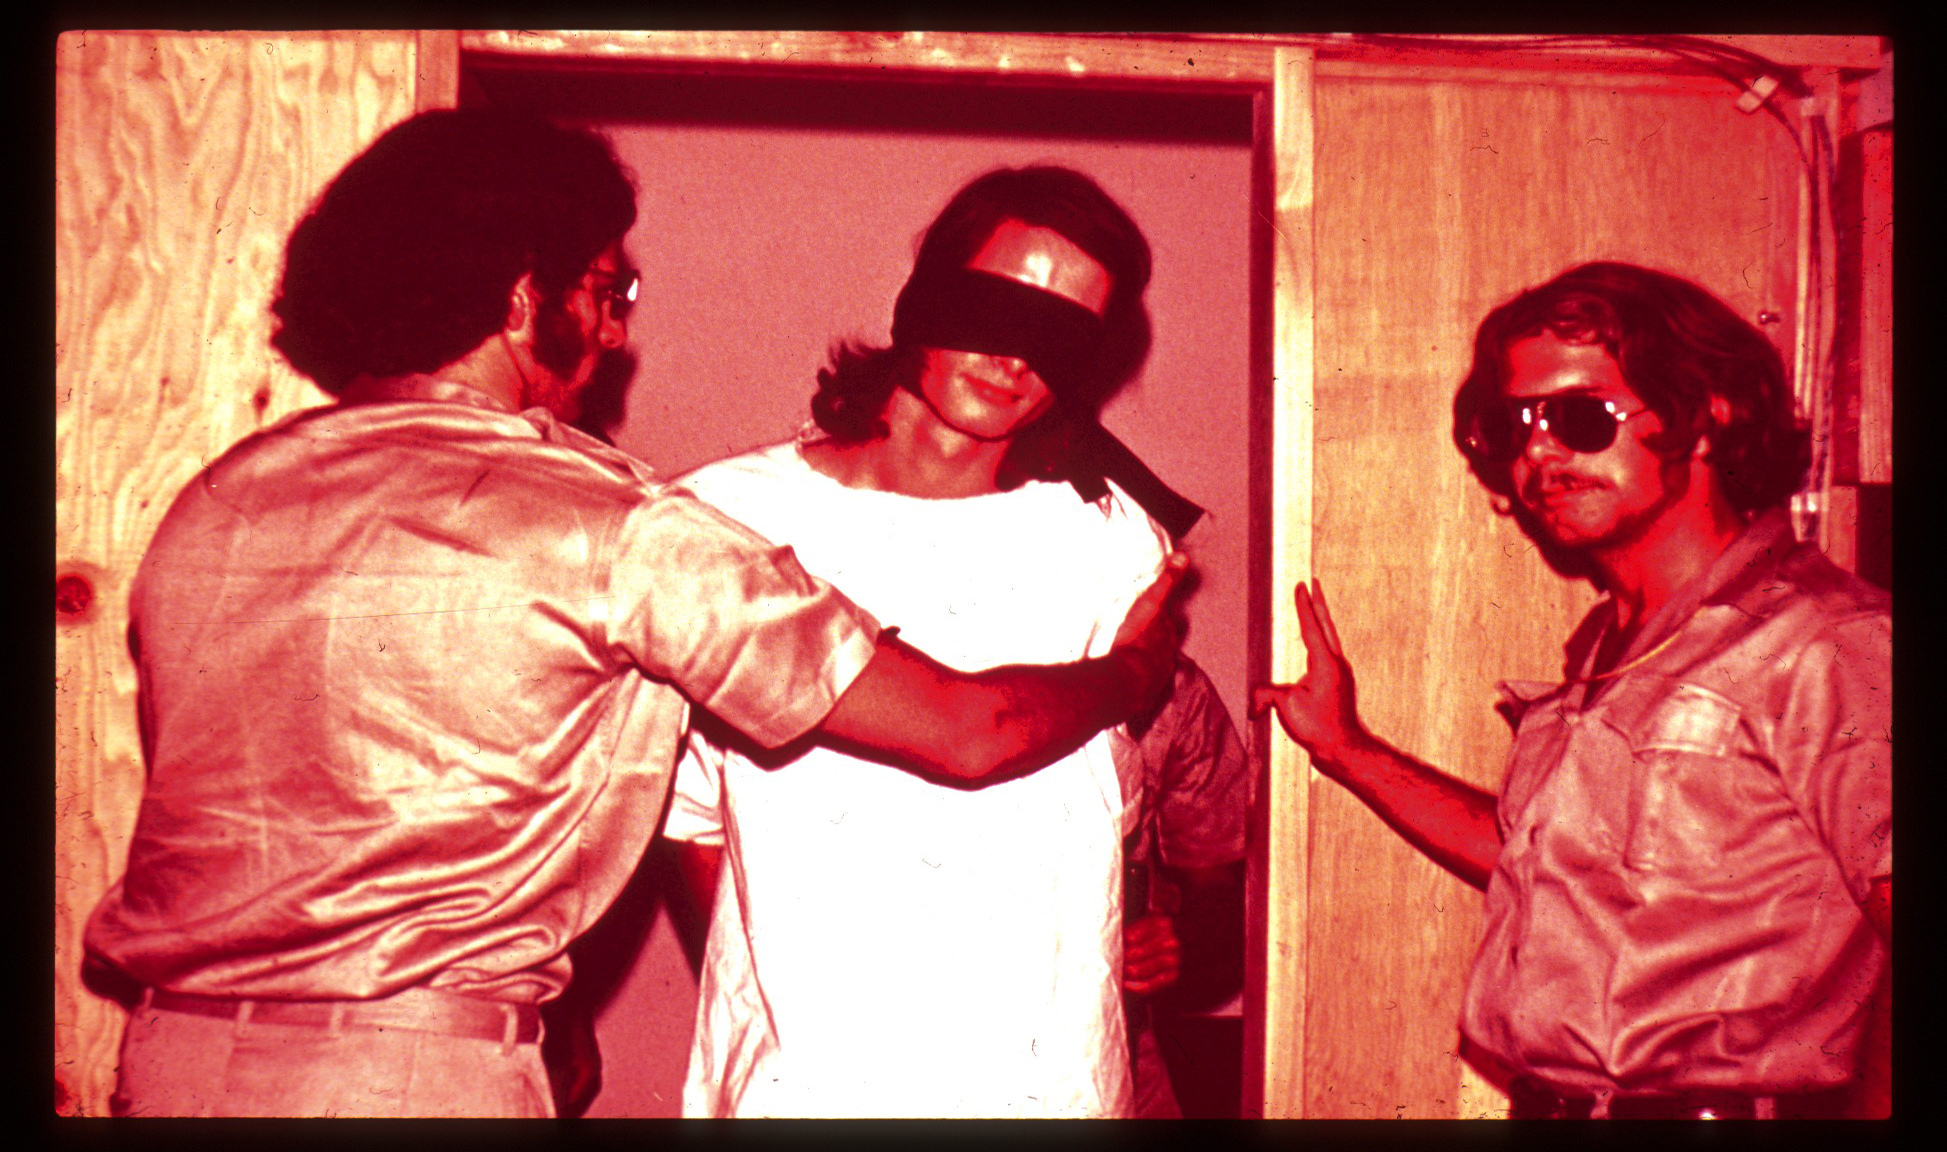 Guards with Blindfolded Prisoner